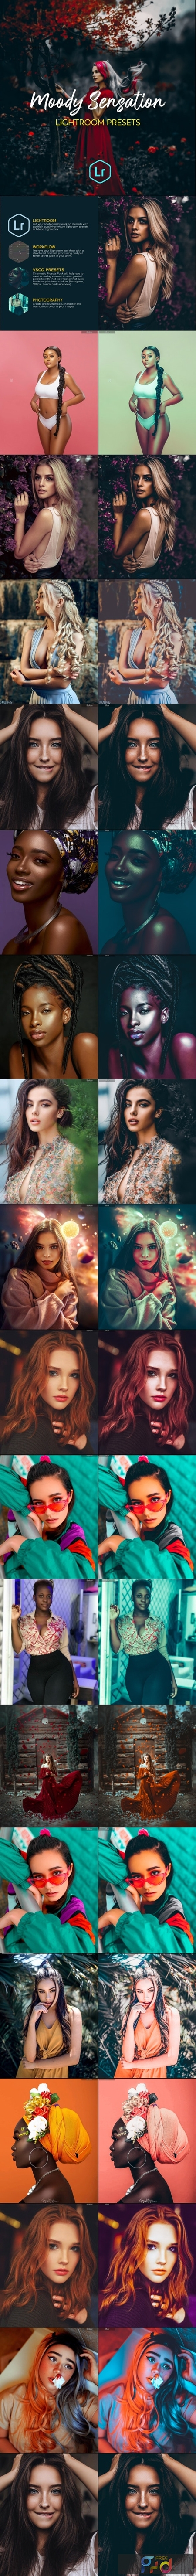 Moody Portraits Collection Lightroom Presets 24876957 1